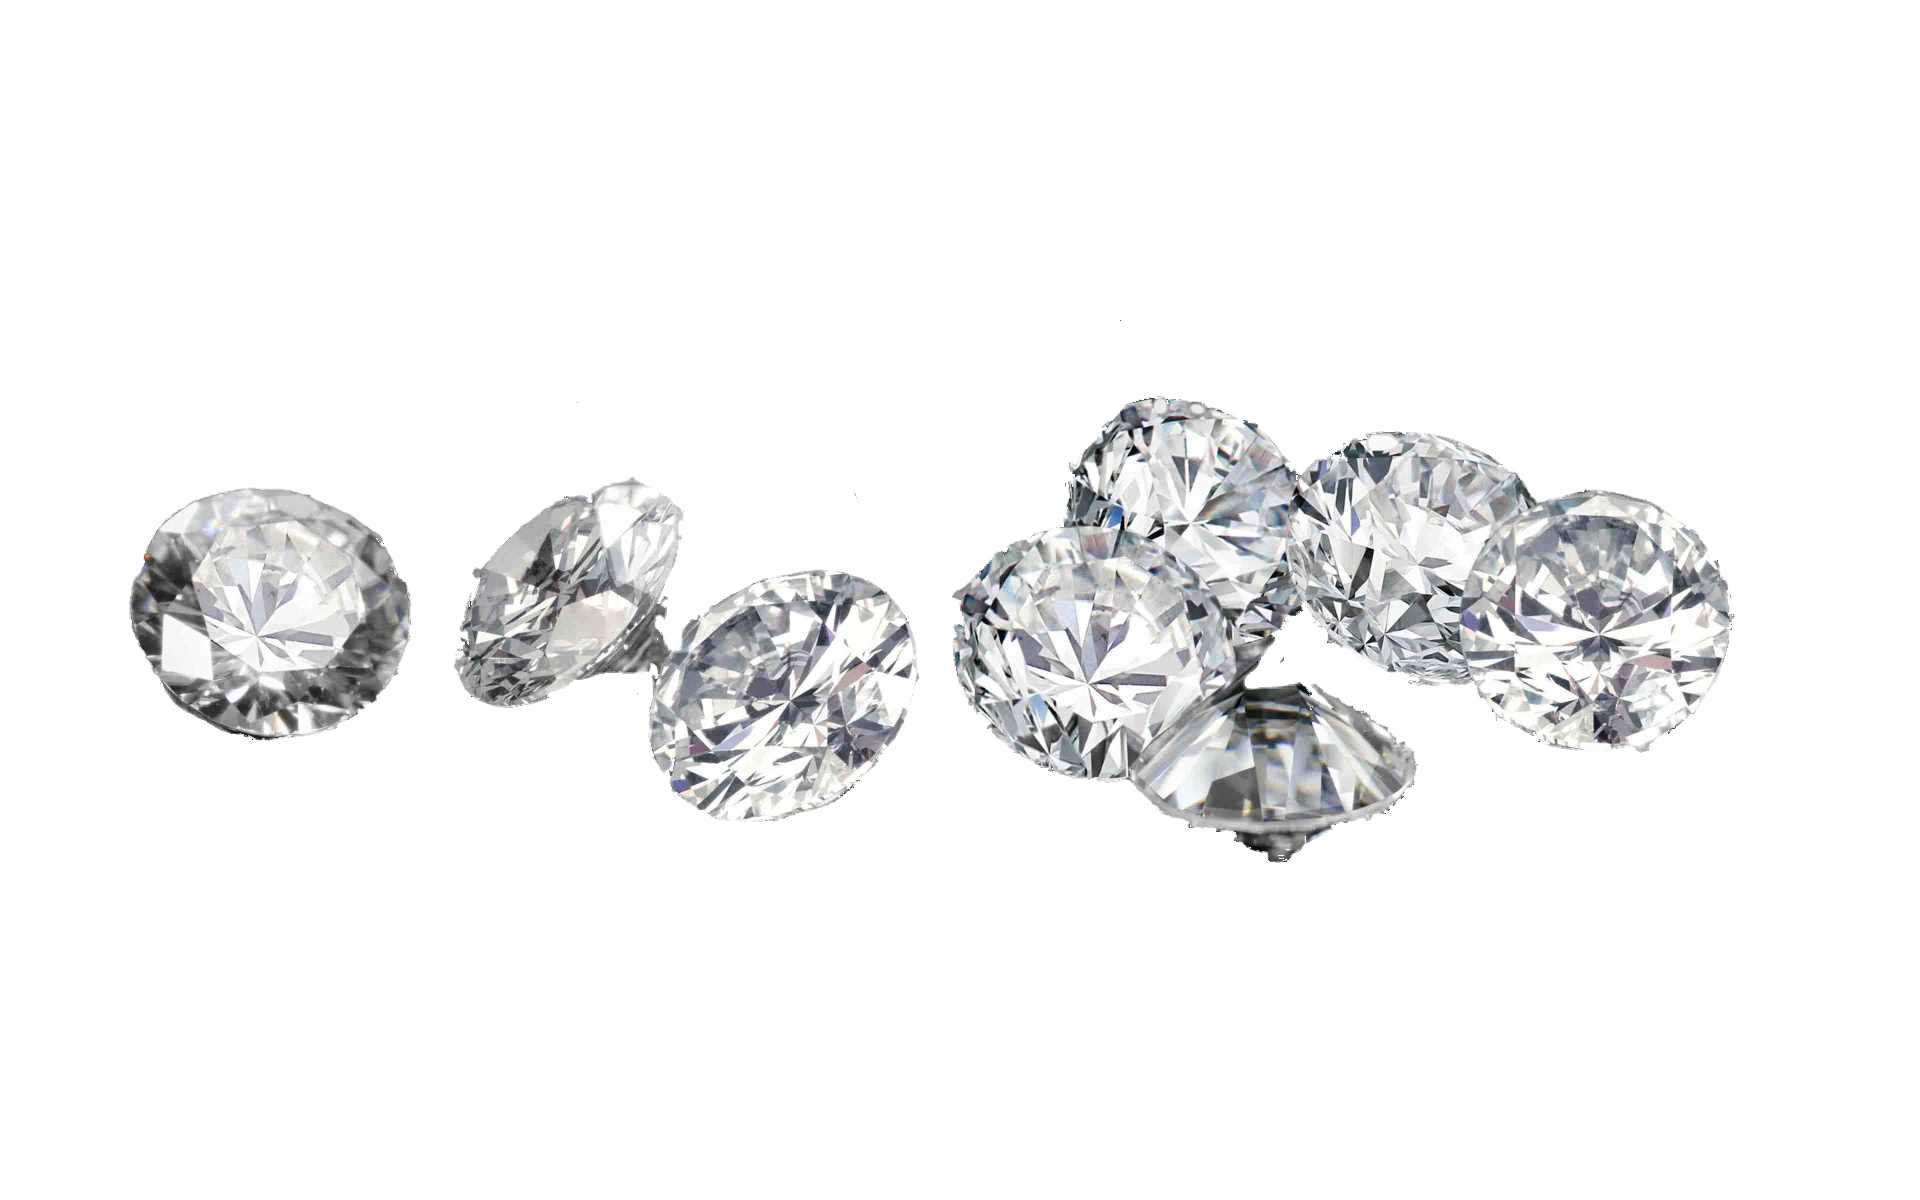 Image Result For Falling Diamonds White Background Photoshop Prints Achtergronden